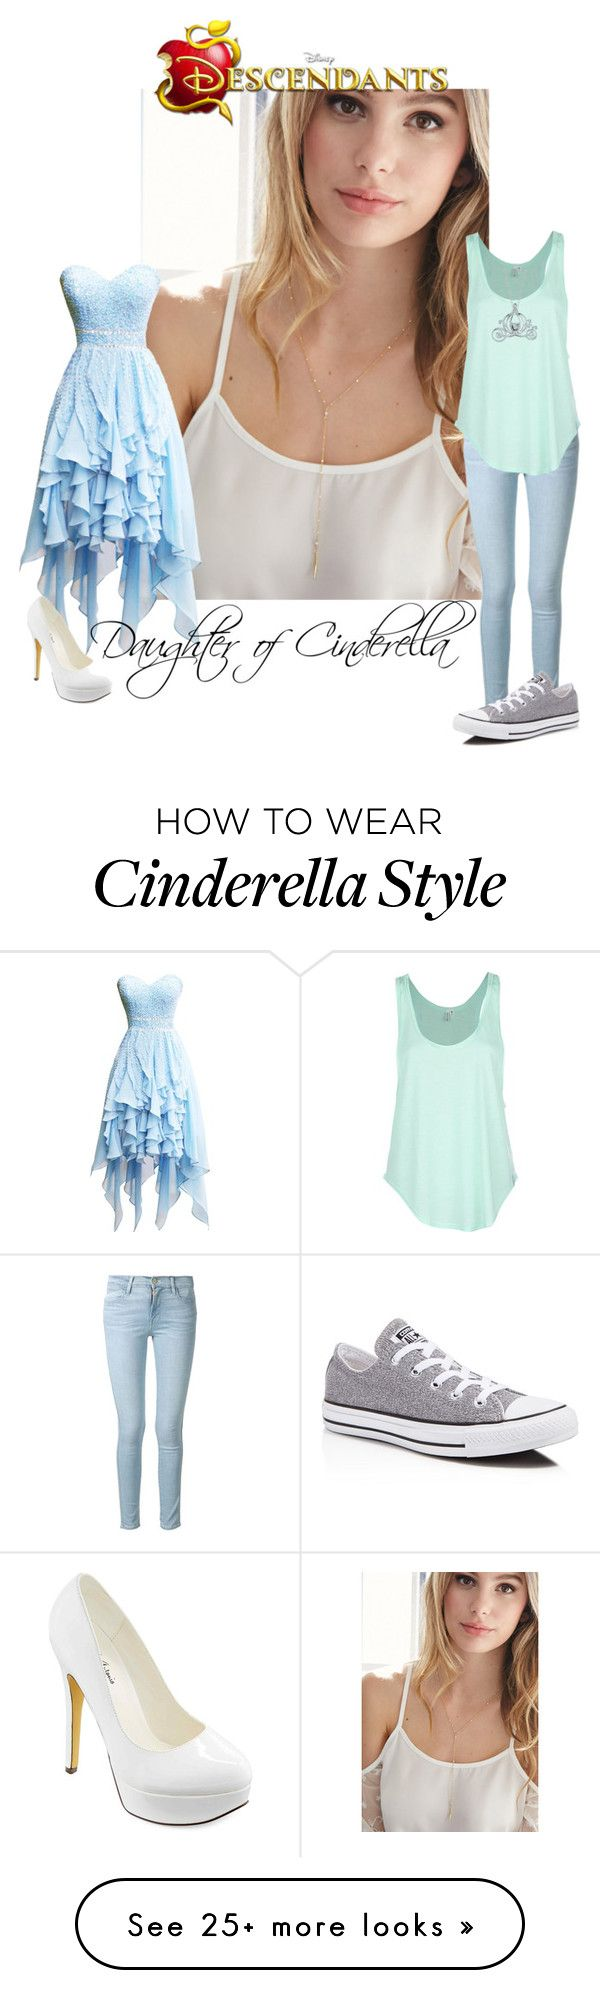 """Daughter of Cinderella"" by laceyleanne18 on Polyvore featuring Forever 21, Frame Denim, Rip Curl, Disney, Converse and Michael Antonio"